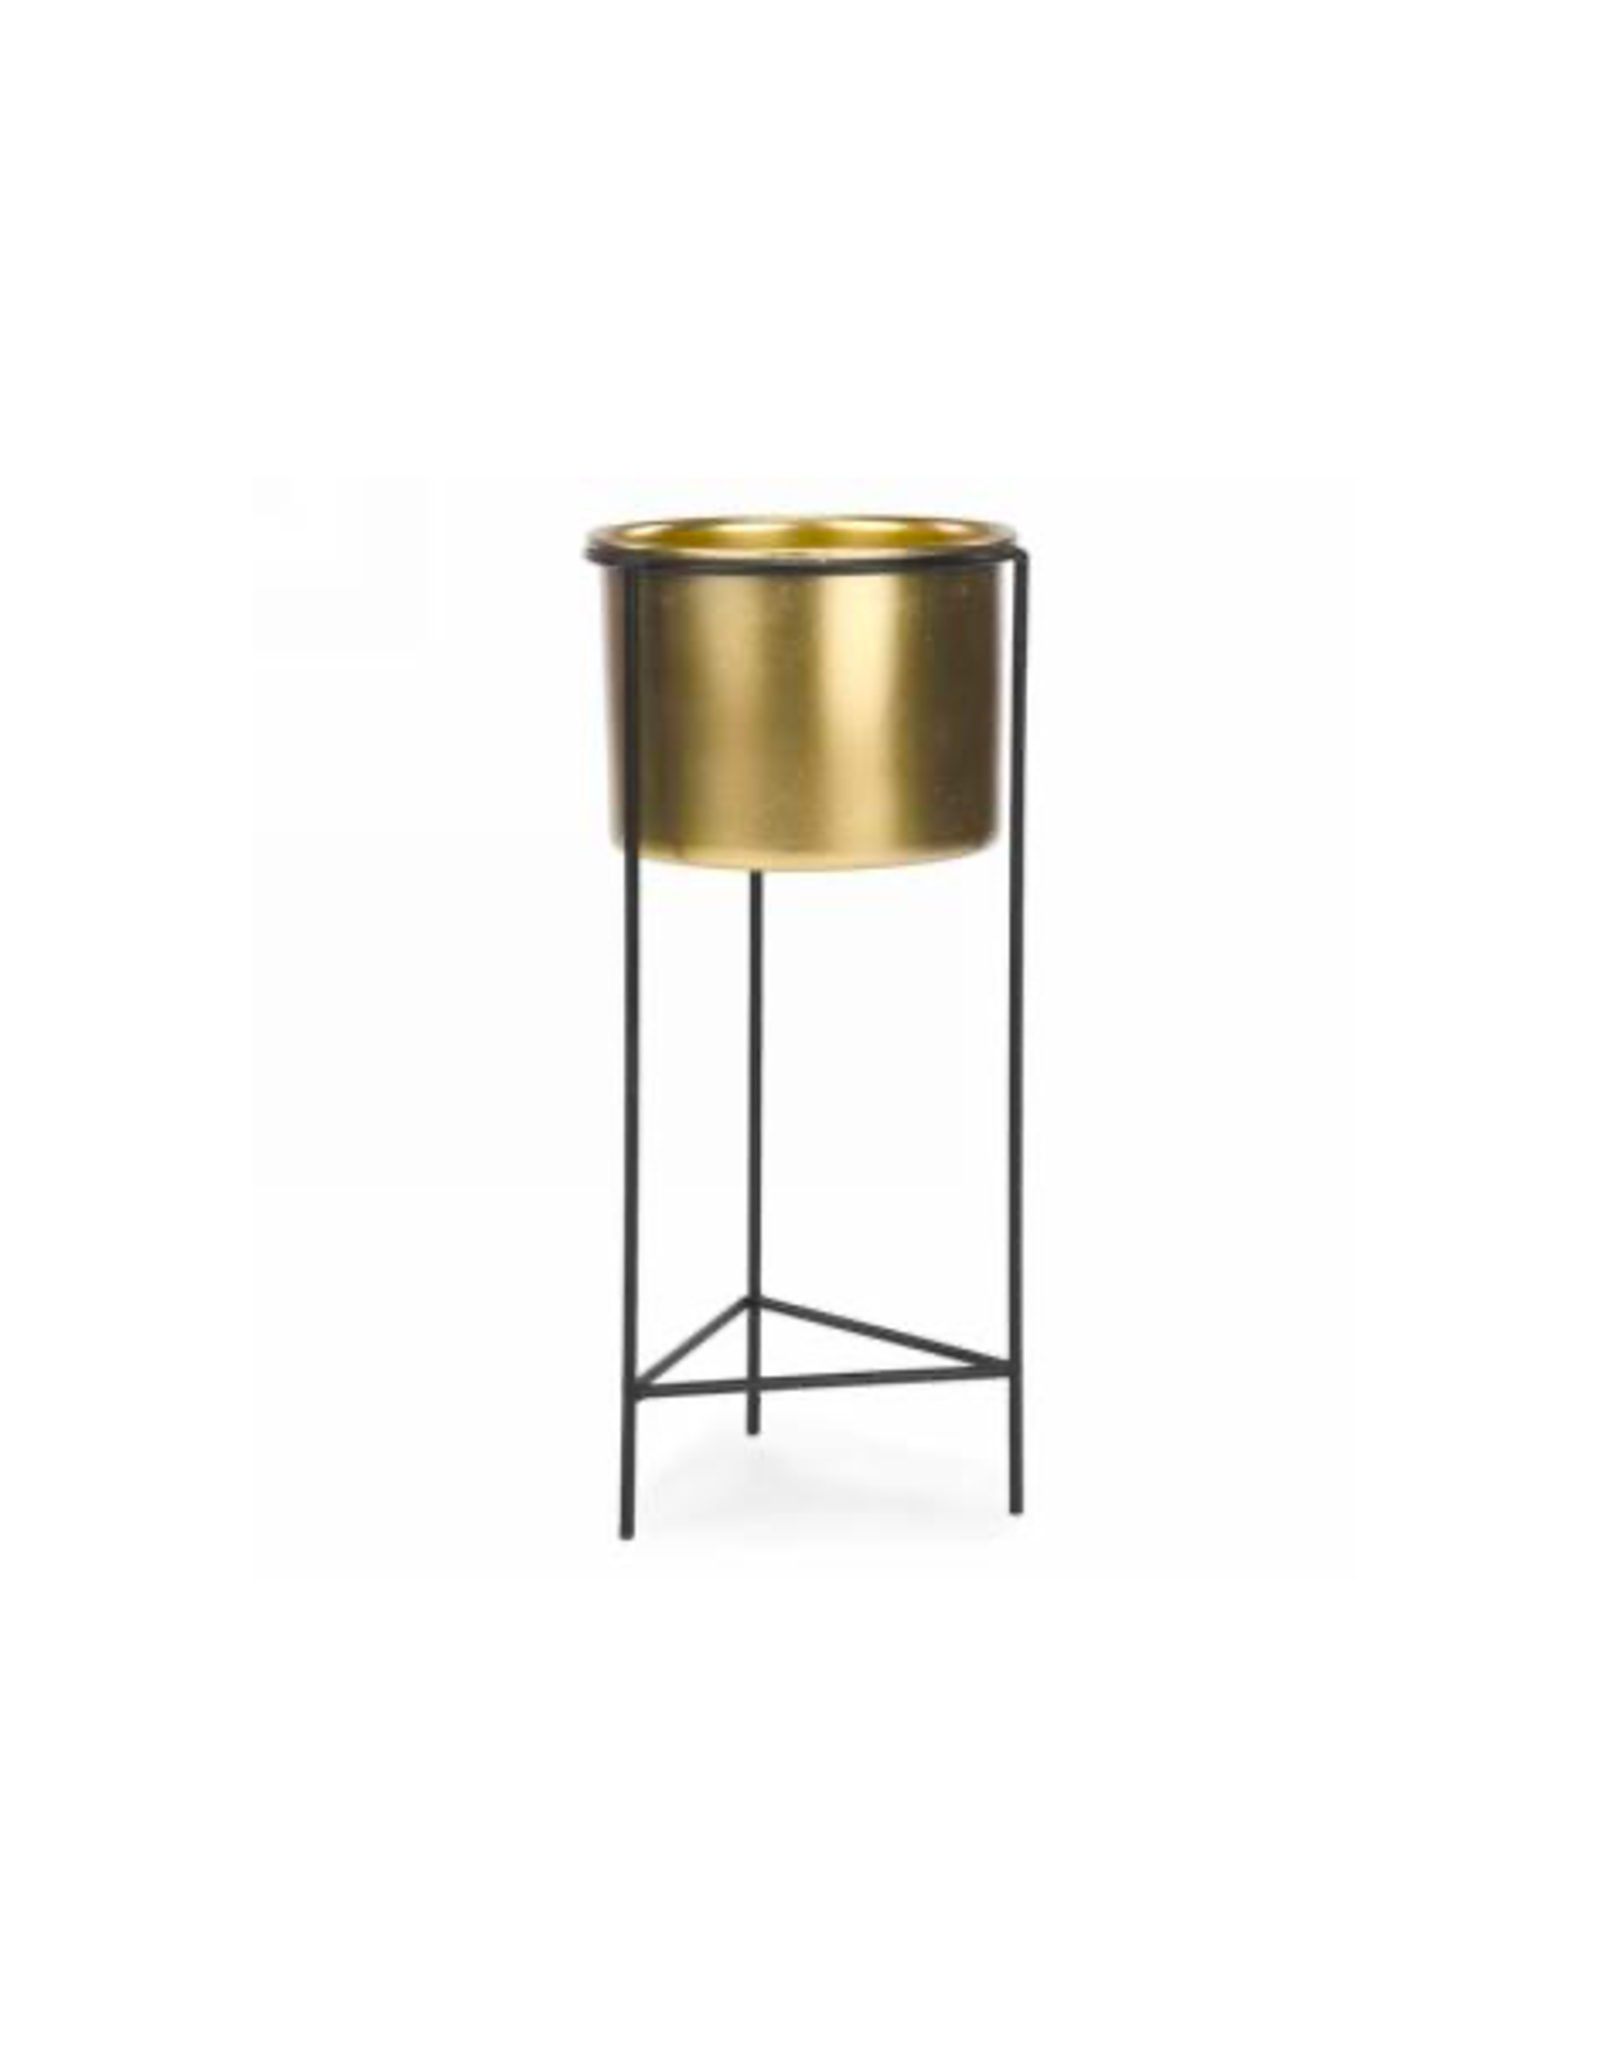 AES - Plant Pot in Stand/Gold & Black, 4.5 x 11""